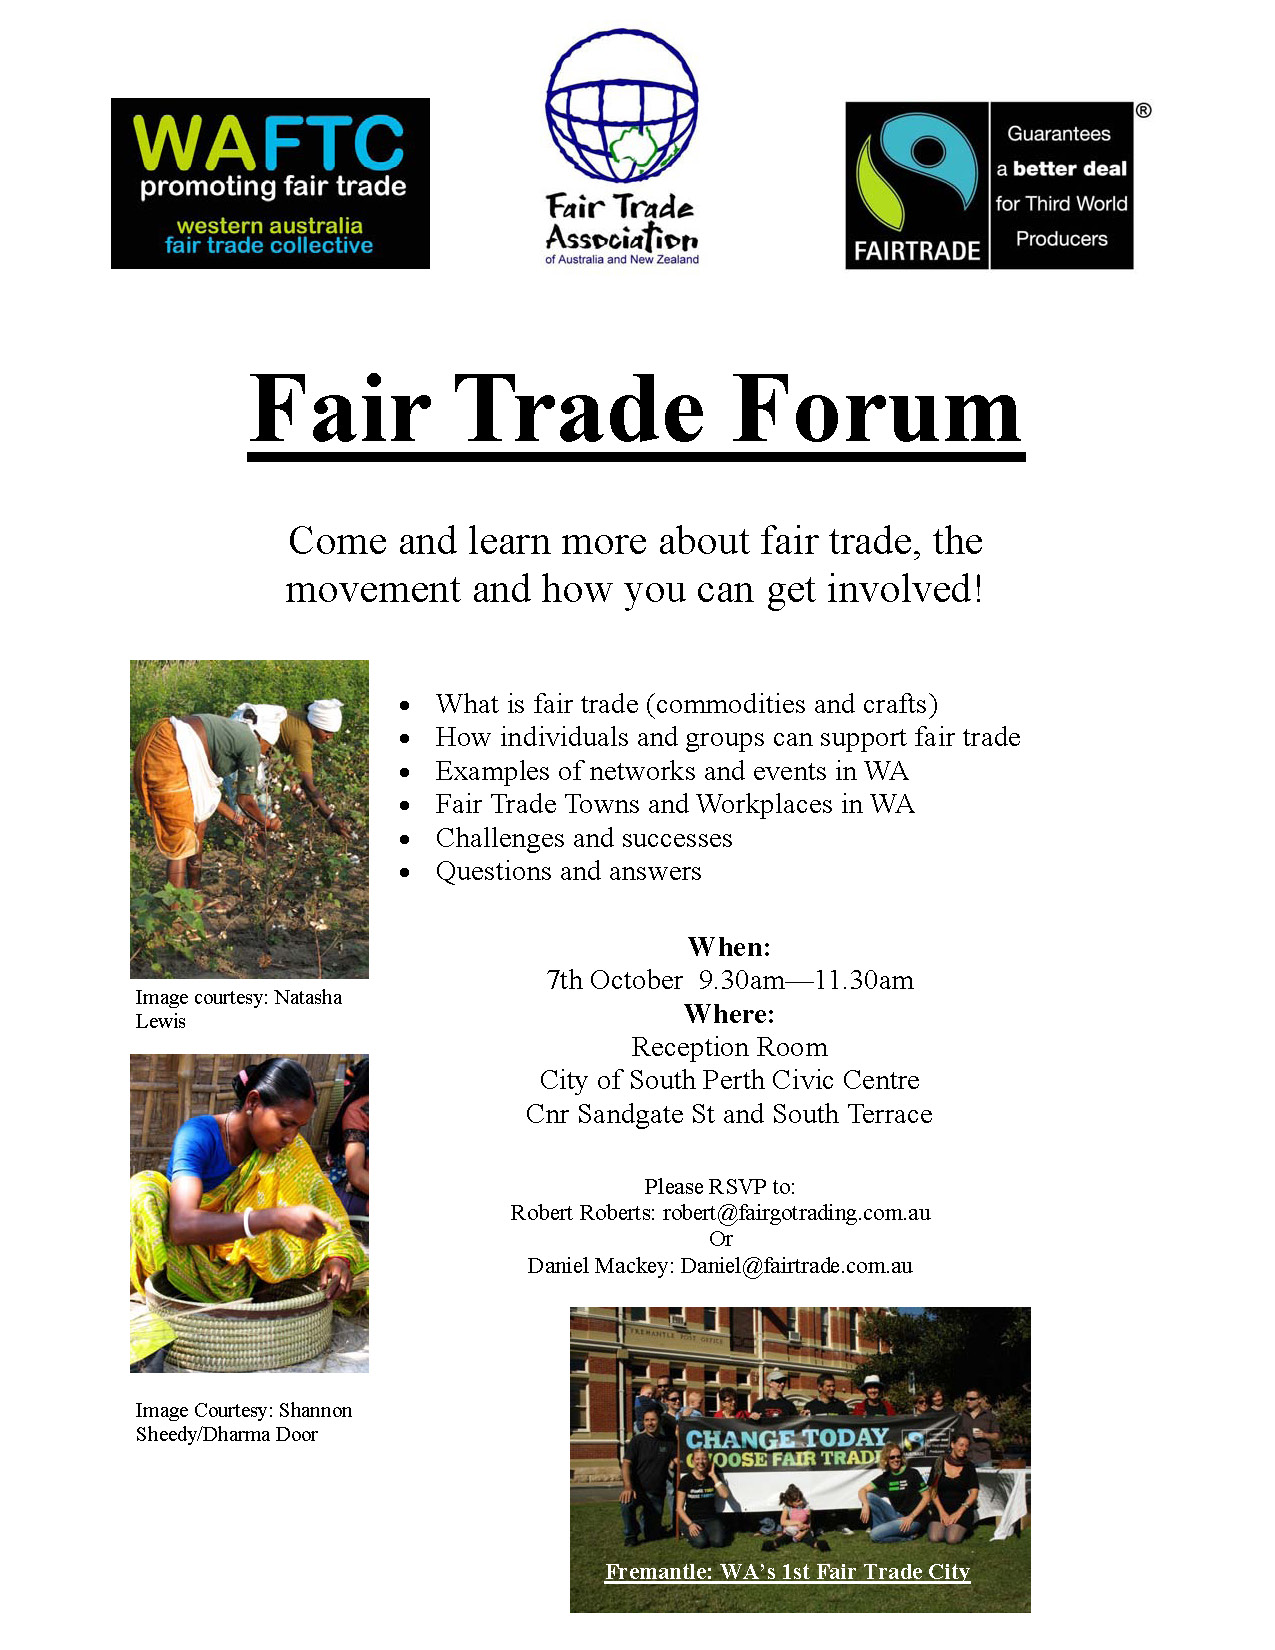 WA Fair Trade Forum Flyer.jpg